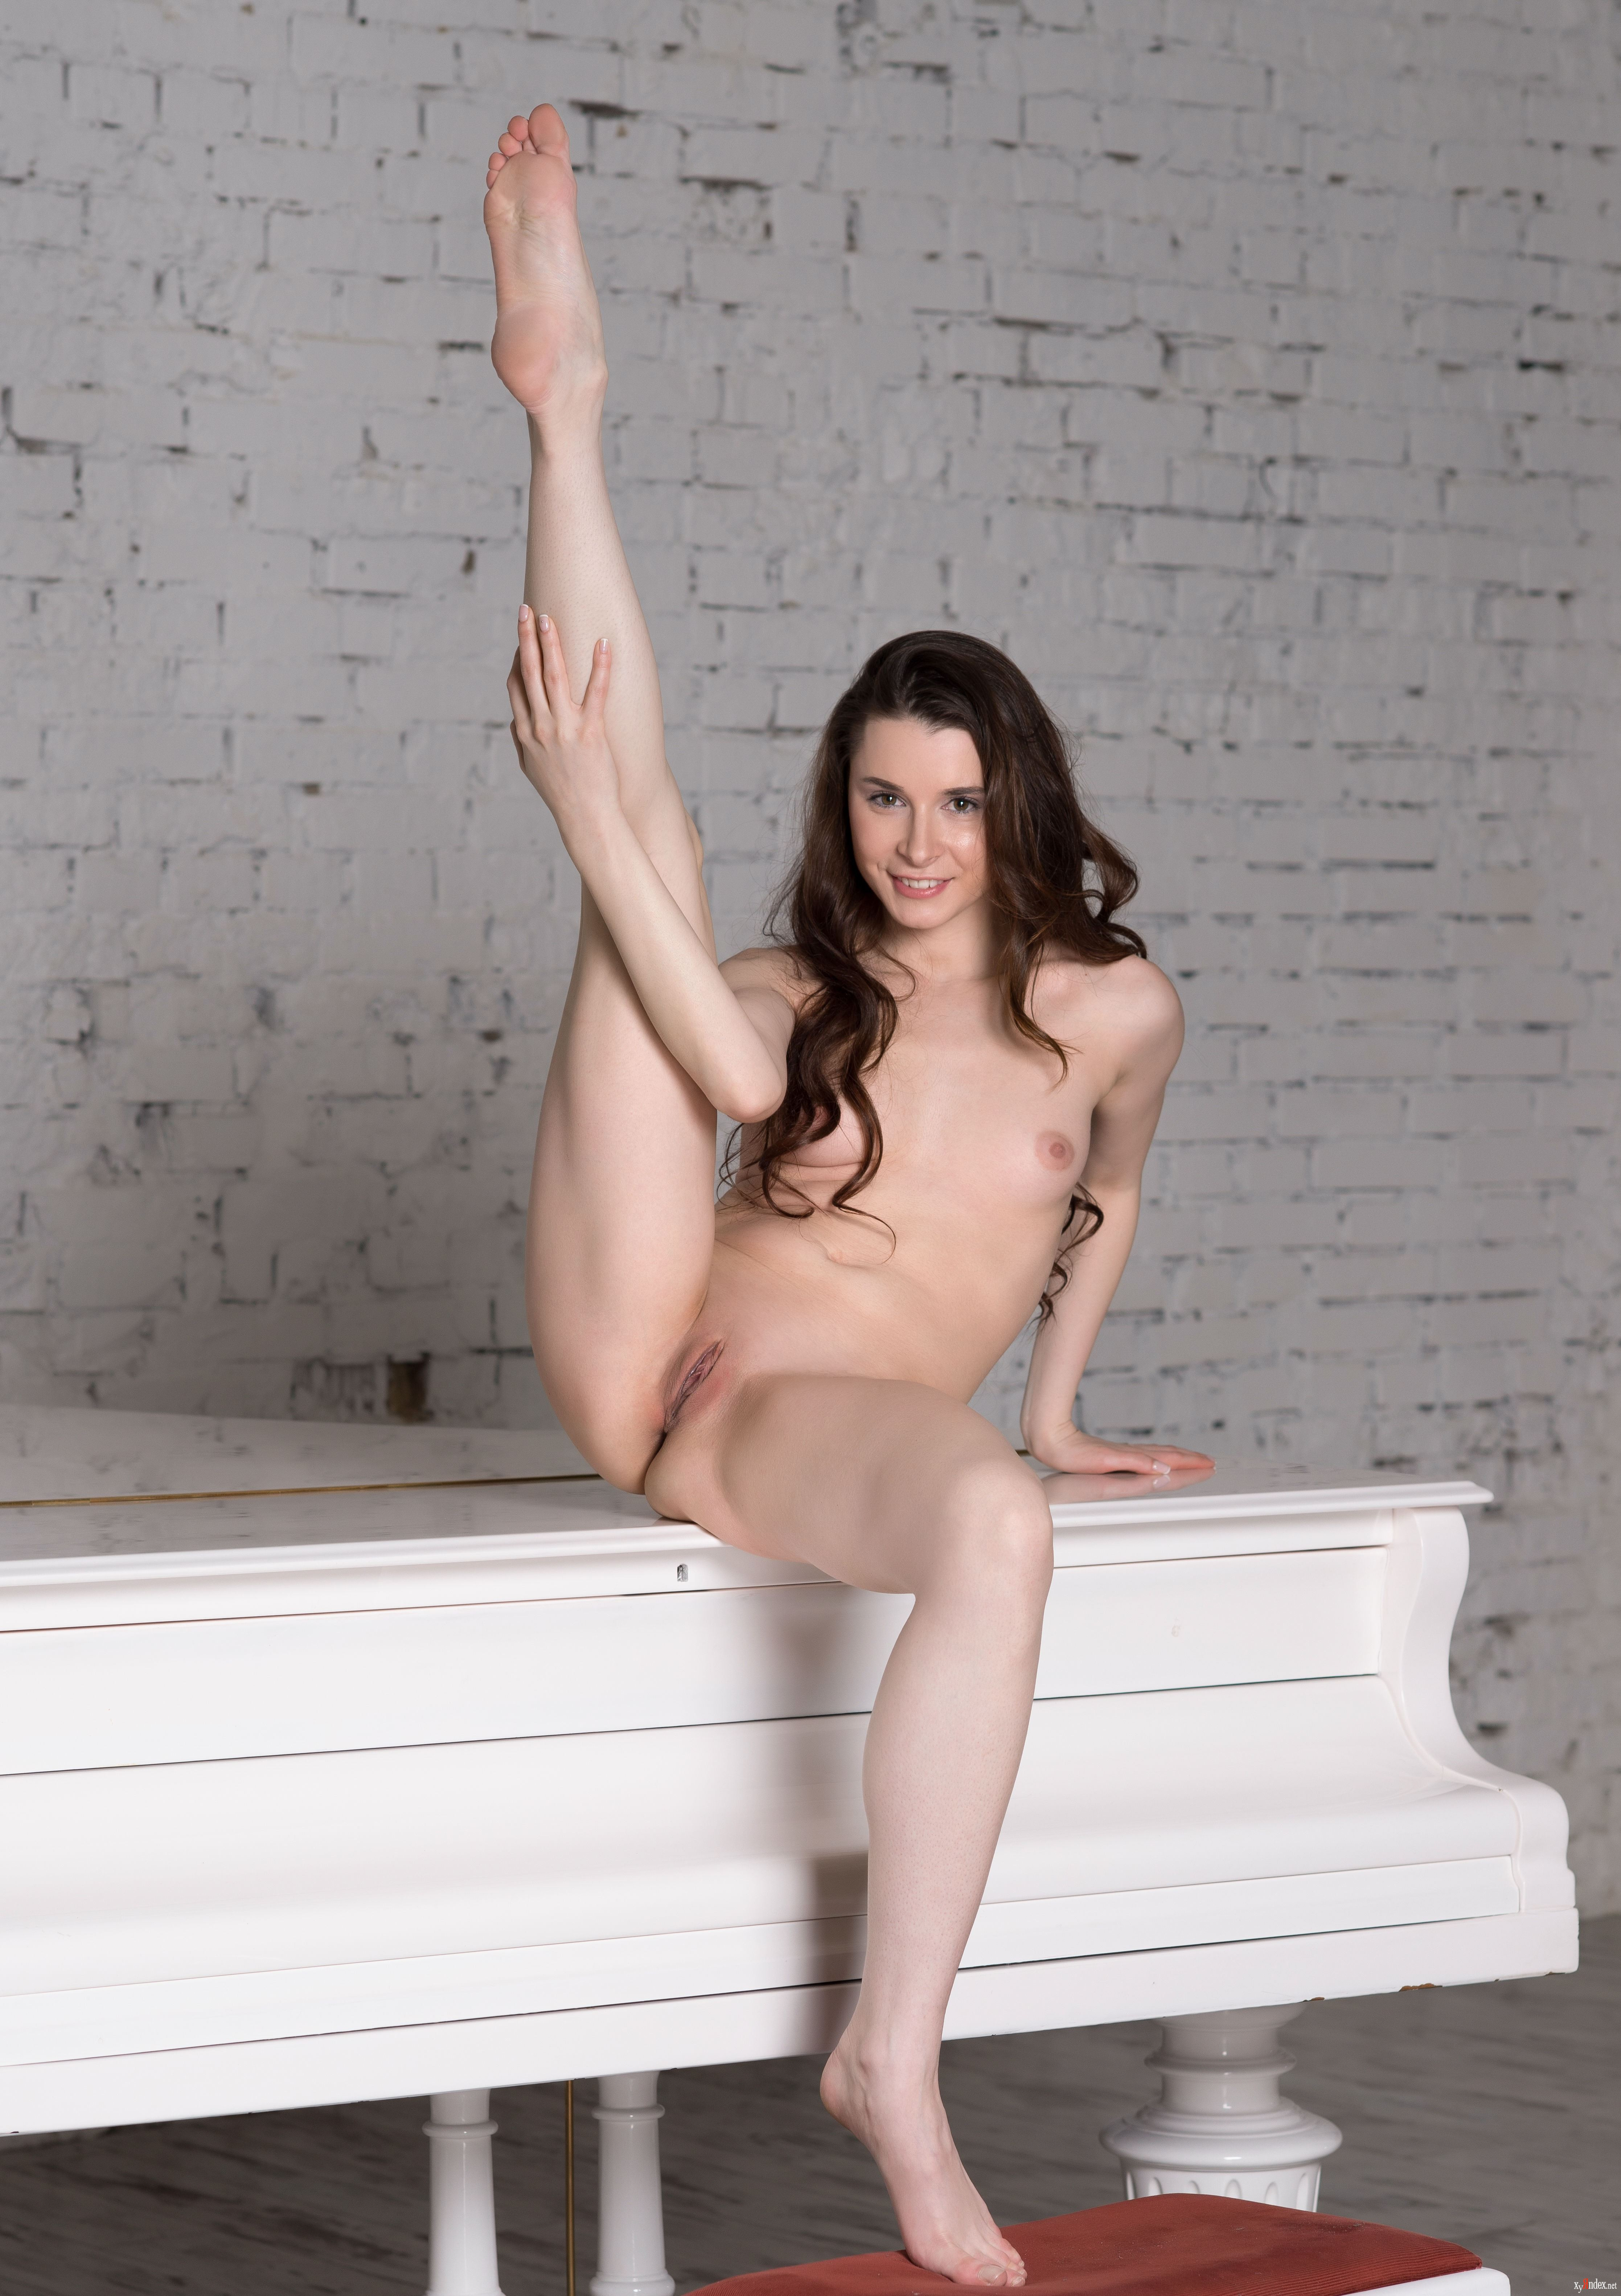 Free Angel Spice Nude Galleries Pics